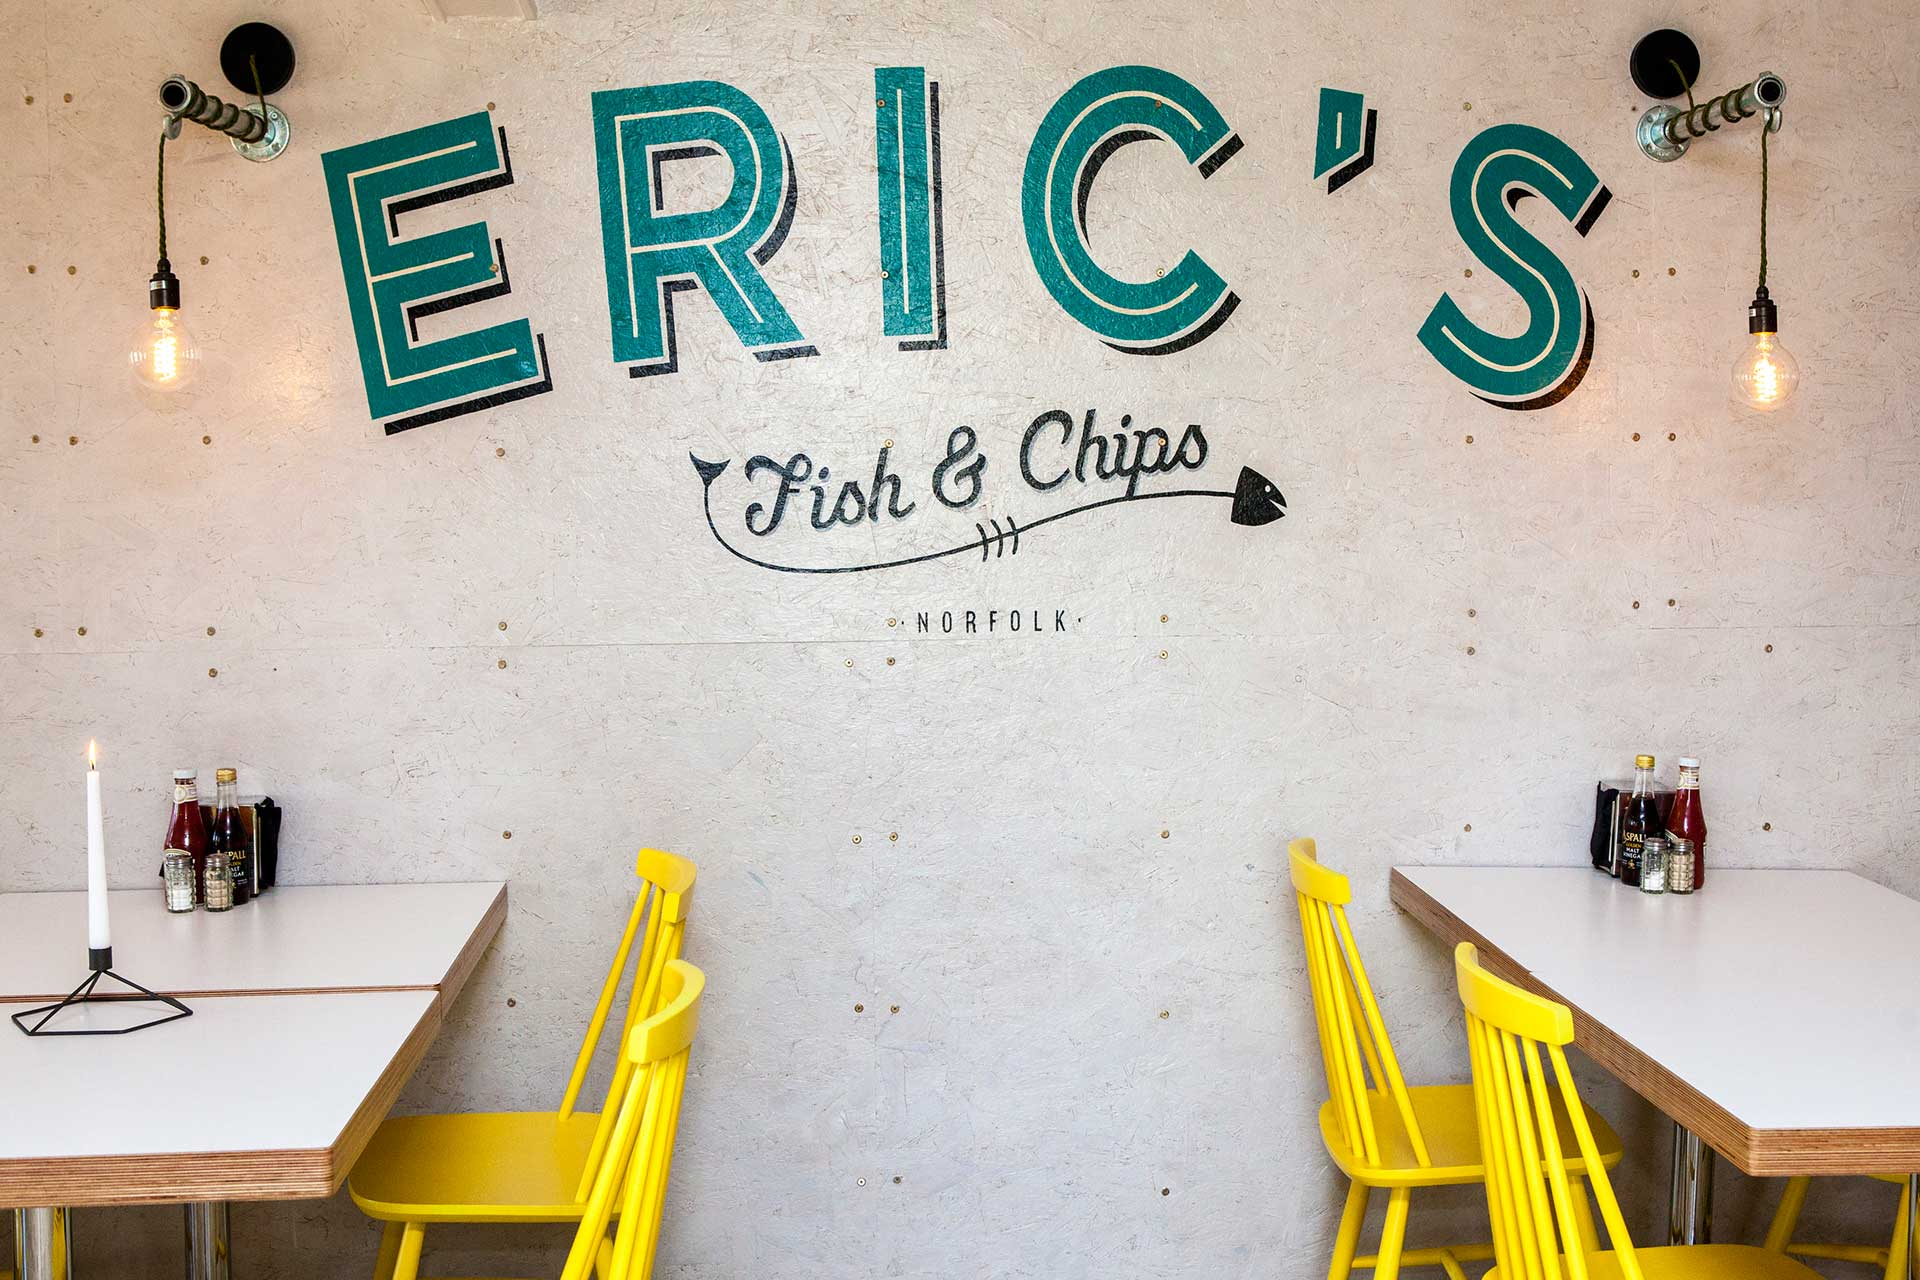 Eric fish and chips .jpg